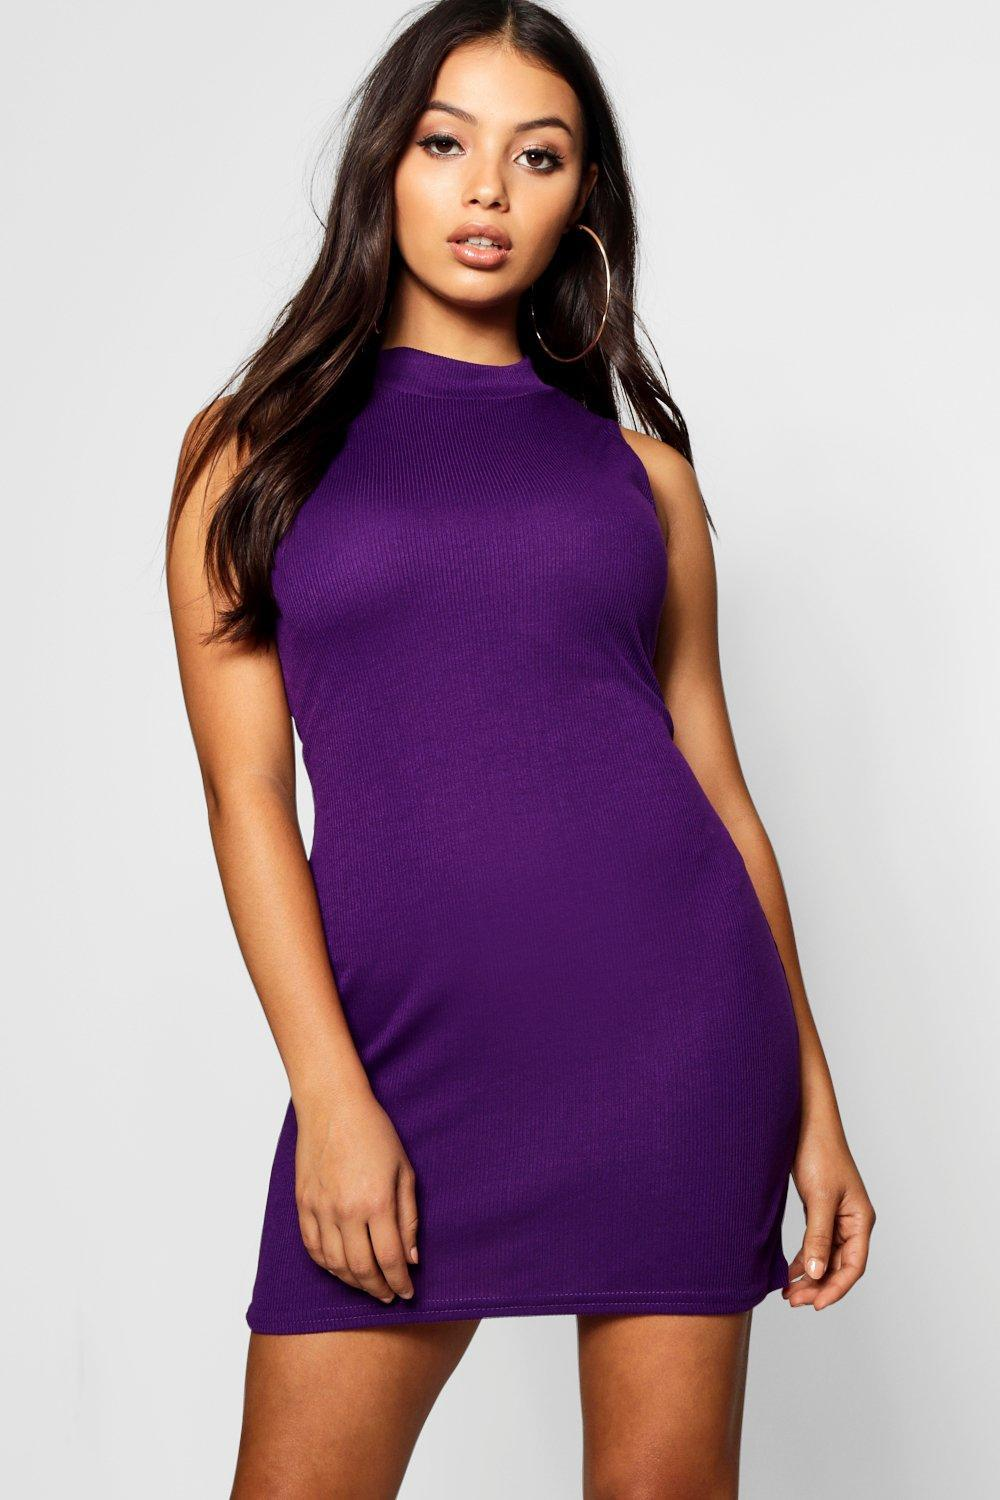 75ff4cd20fc6 Boohoo Petite High Neck Bodycon Dress in Purple - Lyst